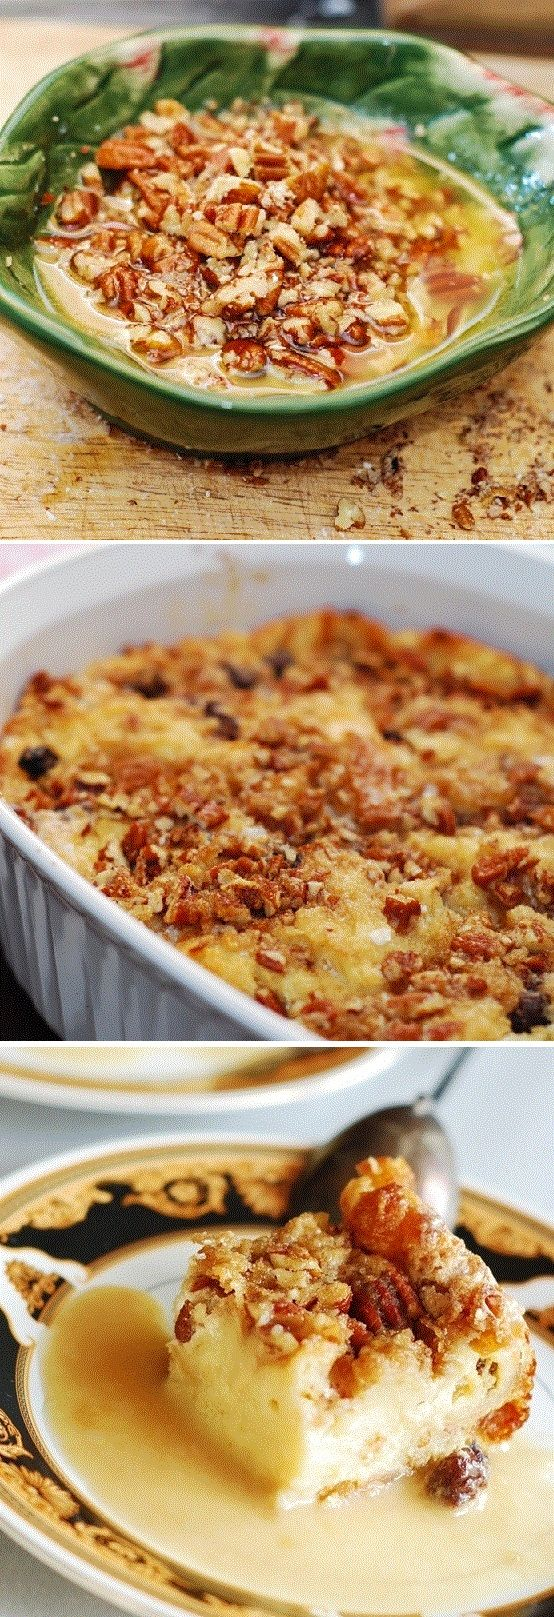 White chocolate bread pudding with cream sauce – made with whiskey ...